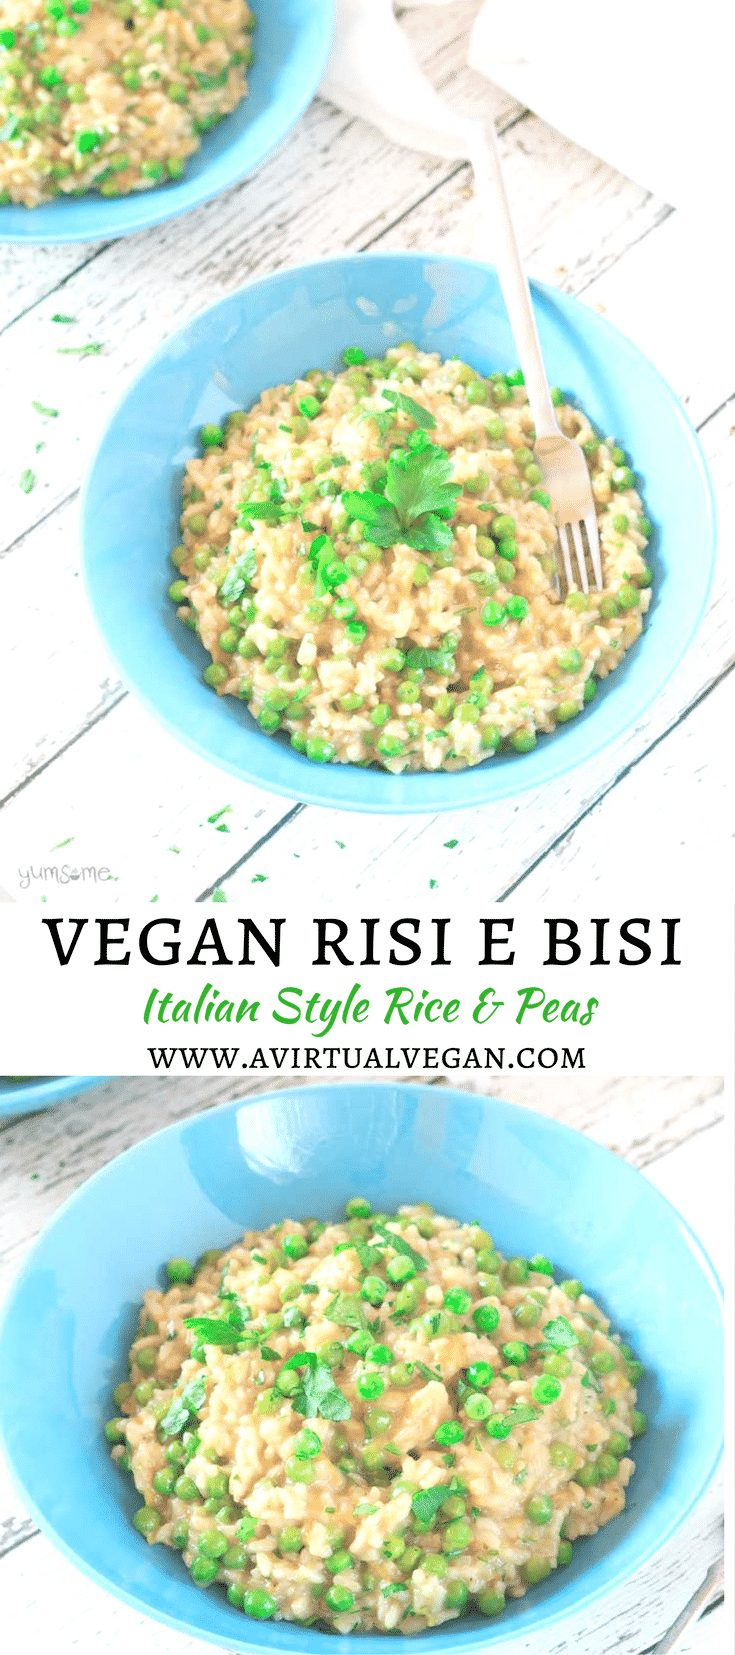 Creamy and velvety vegan Rise e Bisi. This delicious traditional rice dish from Venice is easy to make with just a handful of basic ingredients, and will take around 50 minutes of your time.